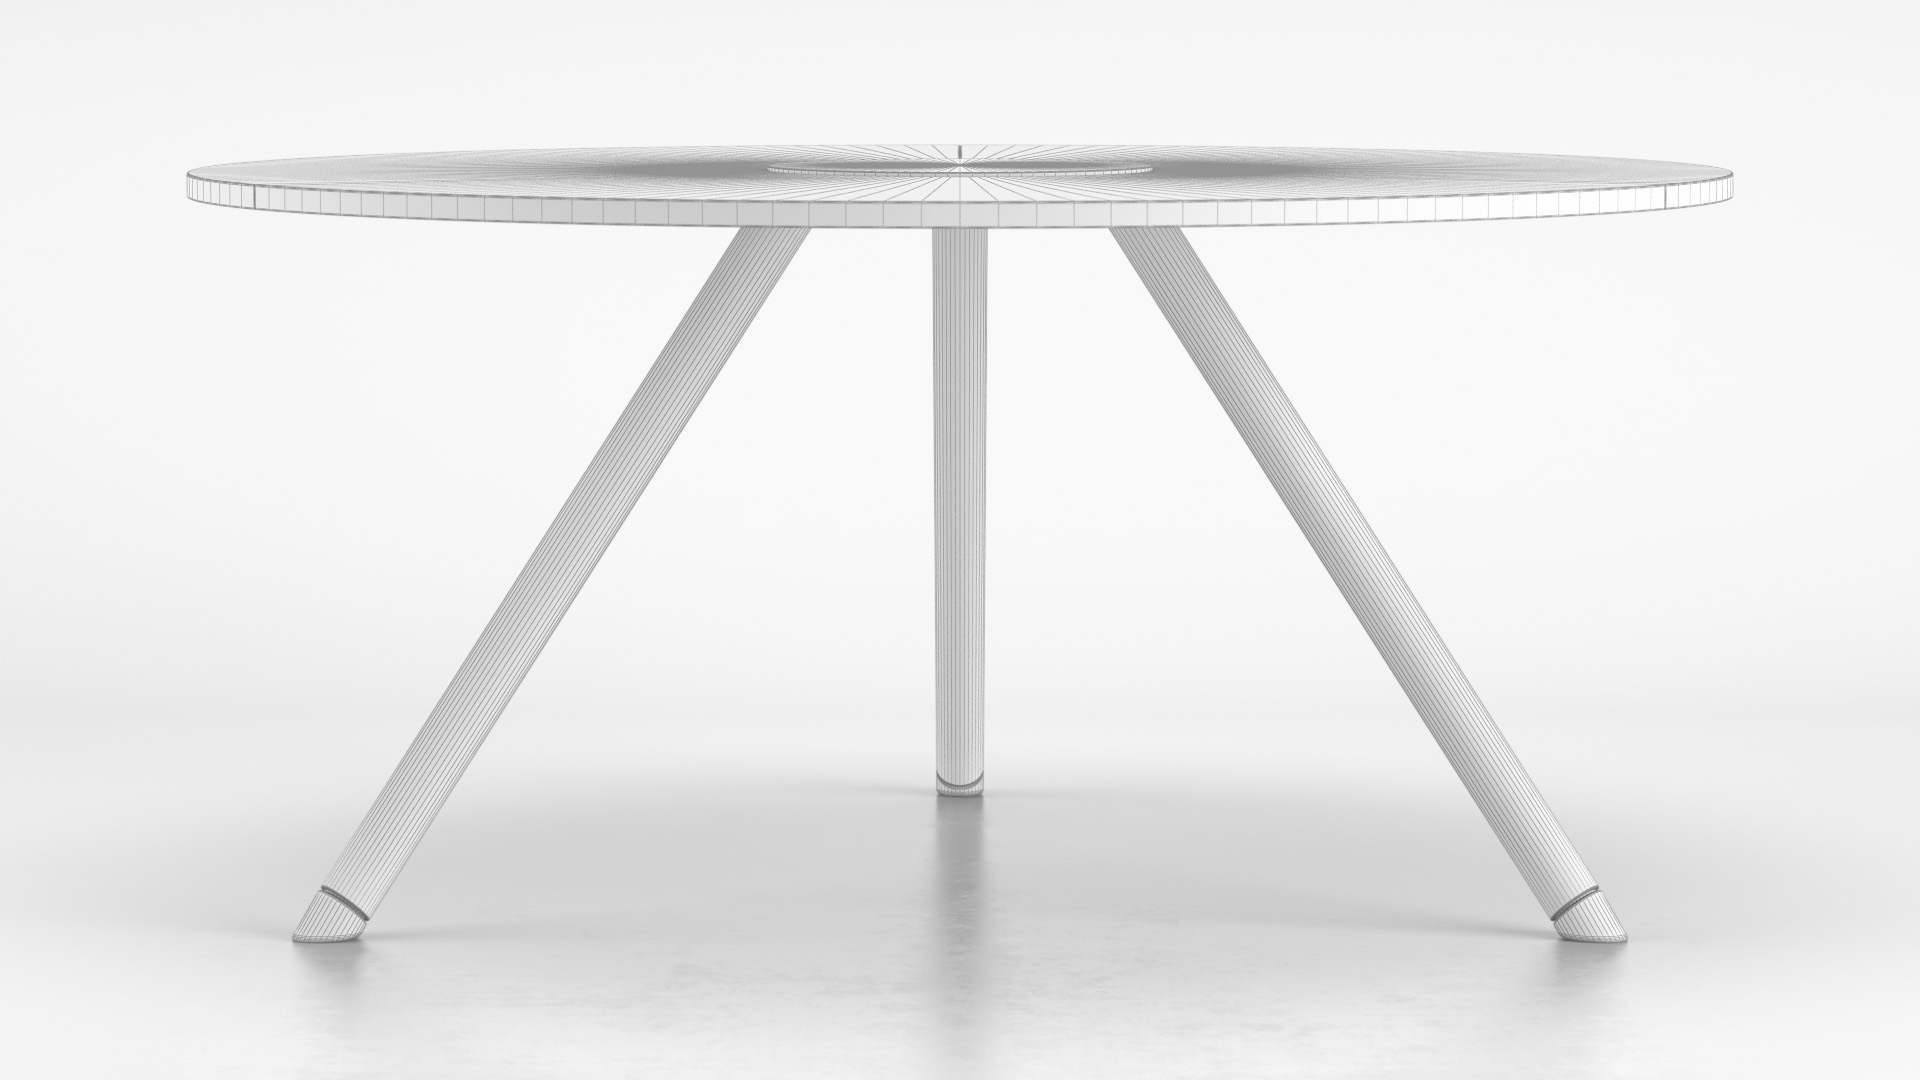 Zenith_Table_WhiteSet_01_wire_0001